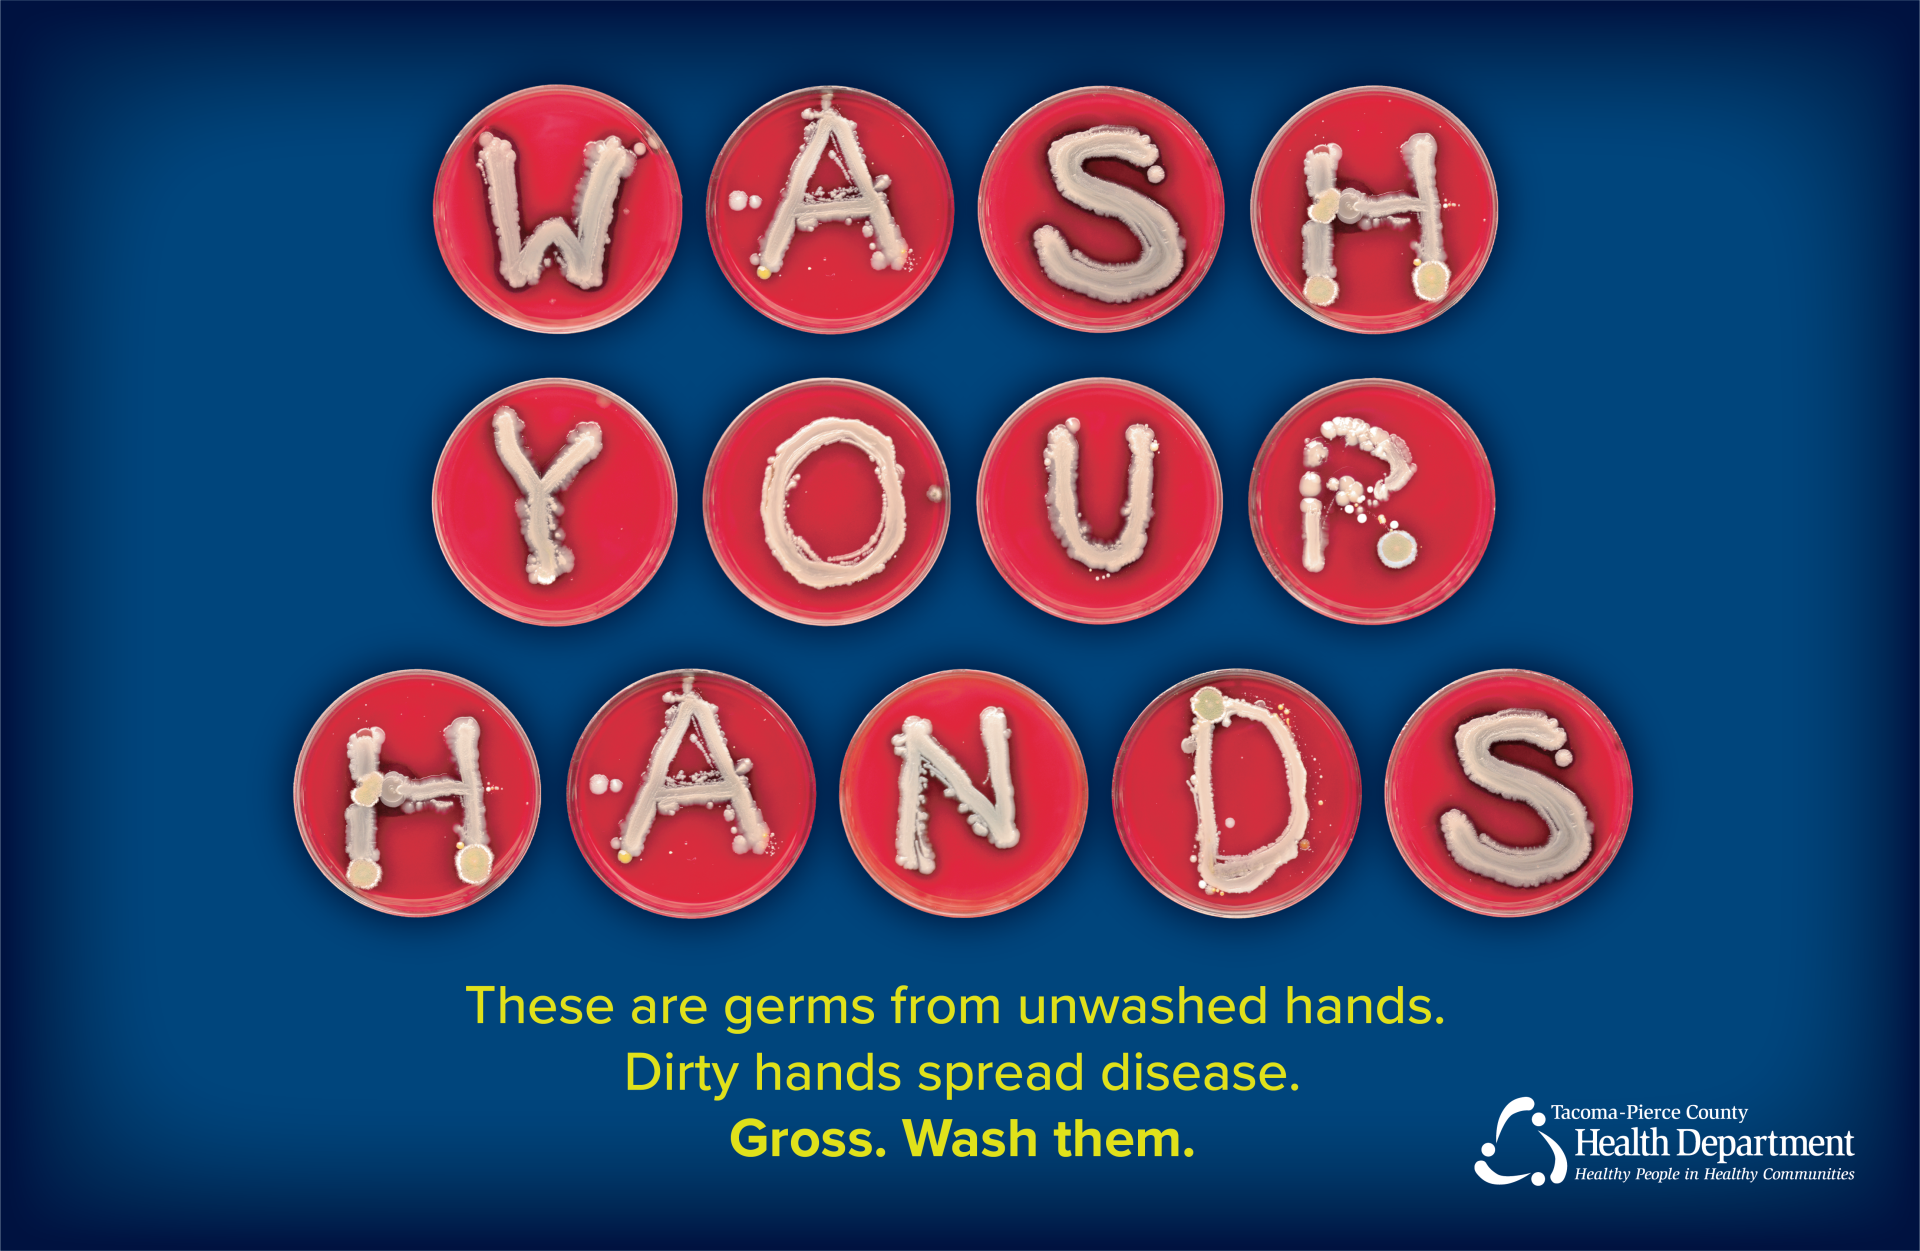 'Wash Your Hands' spelled out in bacteria colonies on individual petri dishes. Text beneath reads: These are germs from unwashed hands. Dirty hands spread disease. Gross. Wash them.'